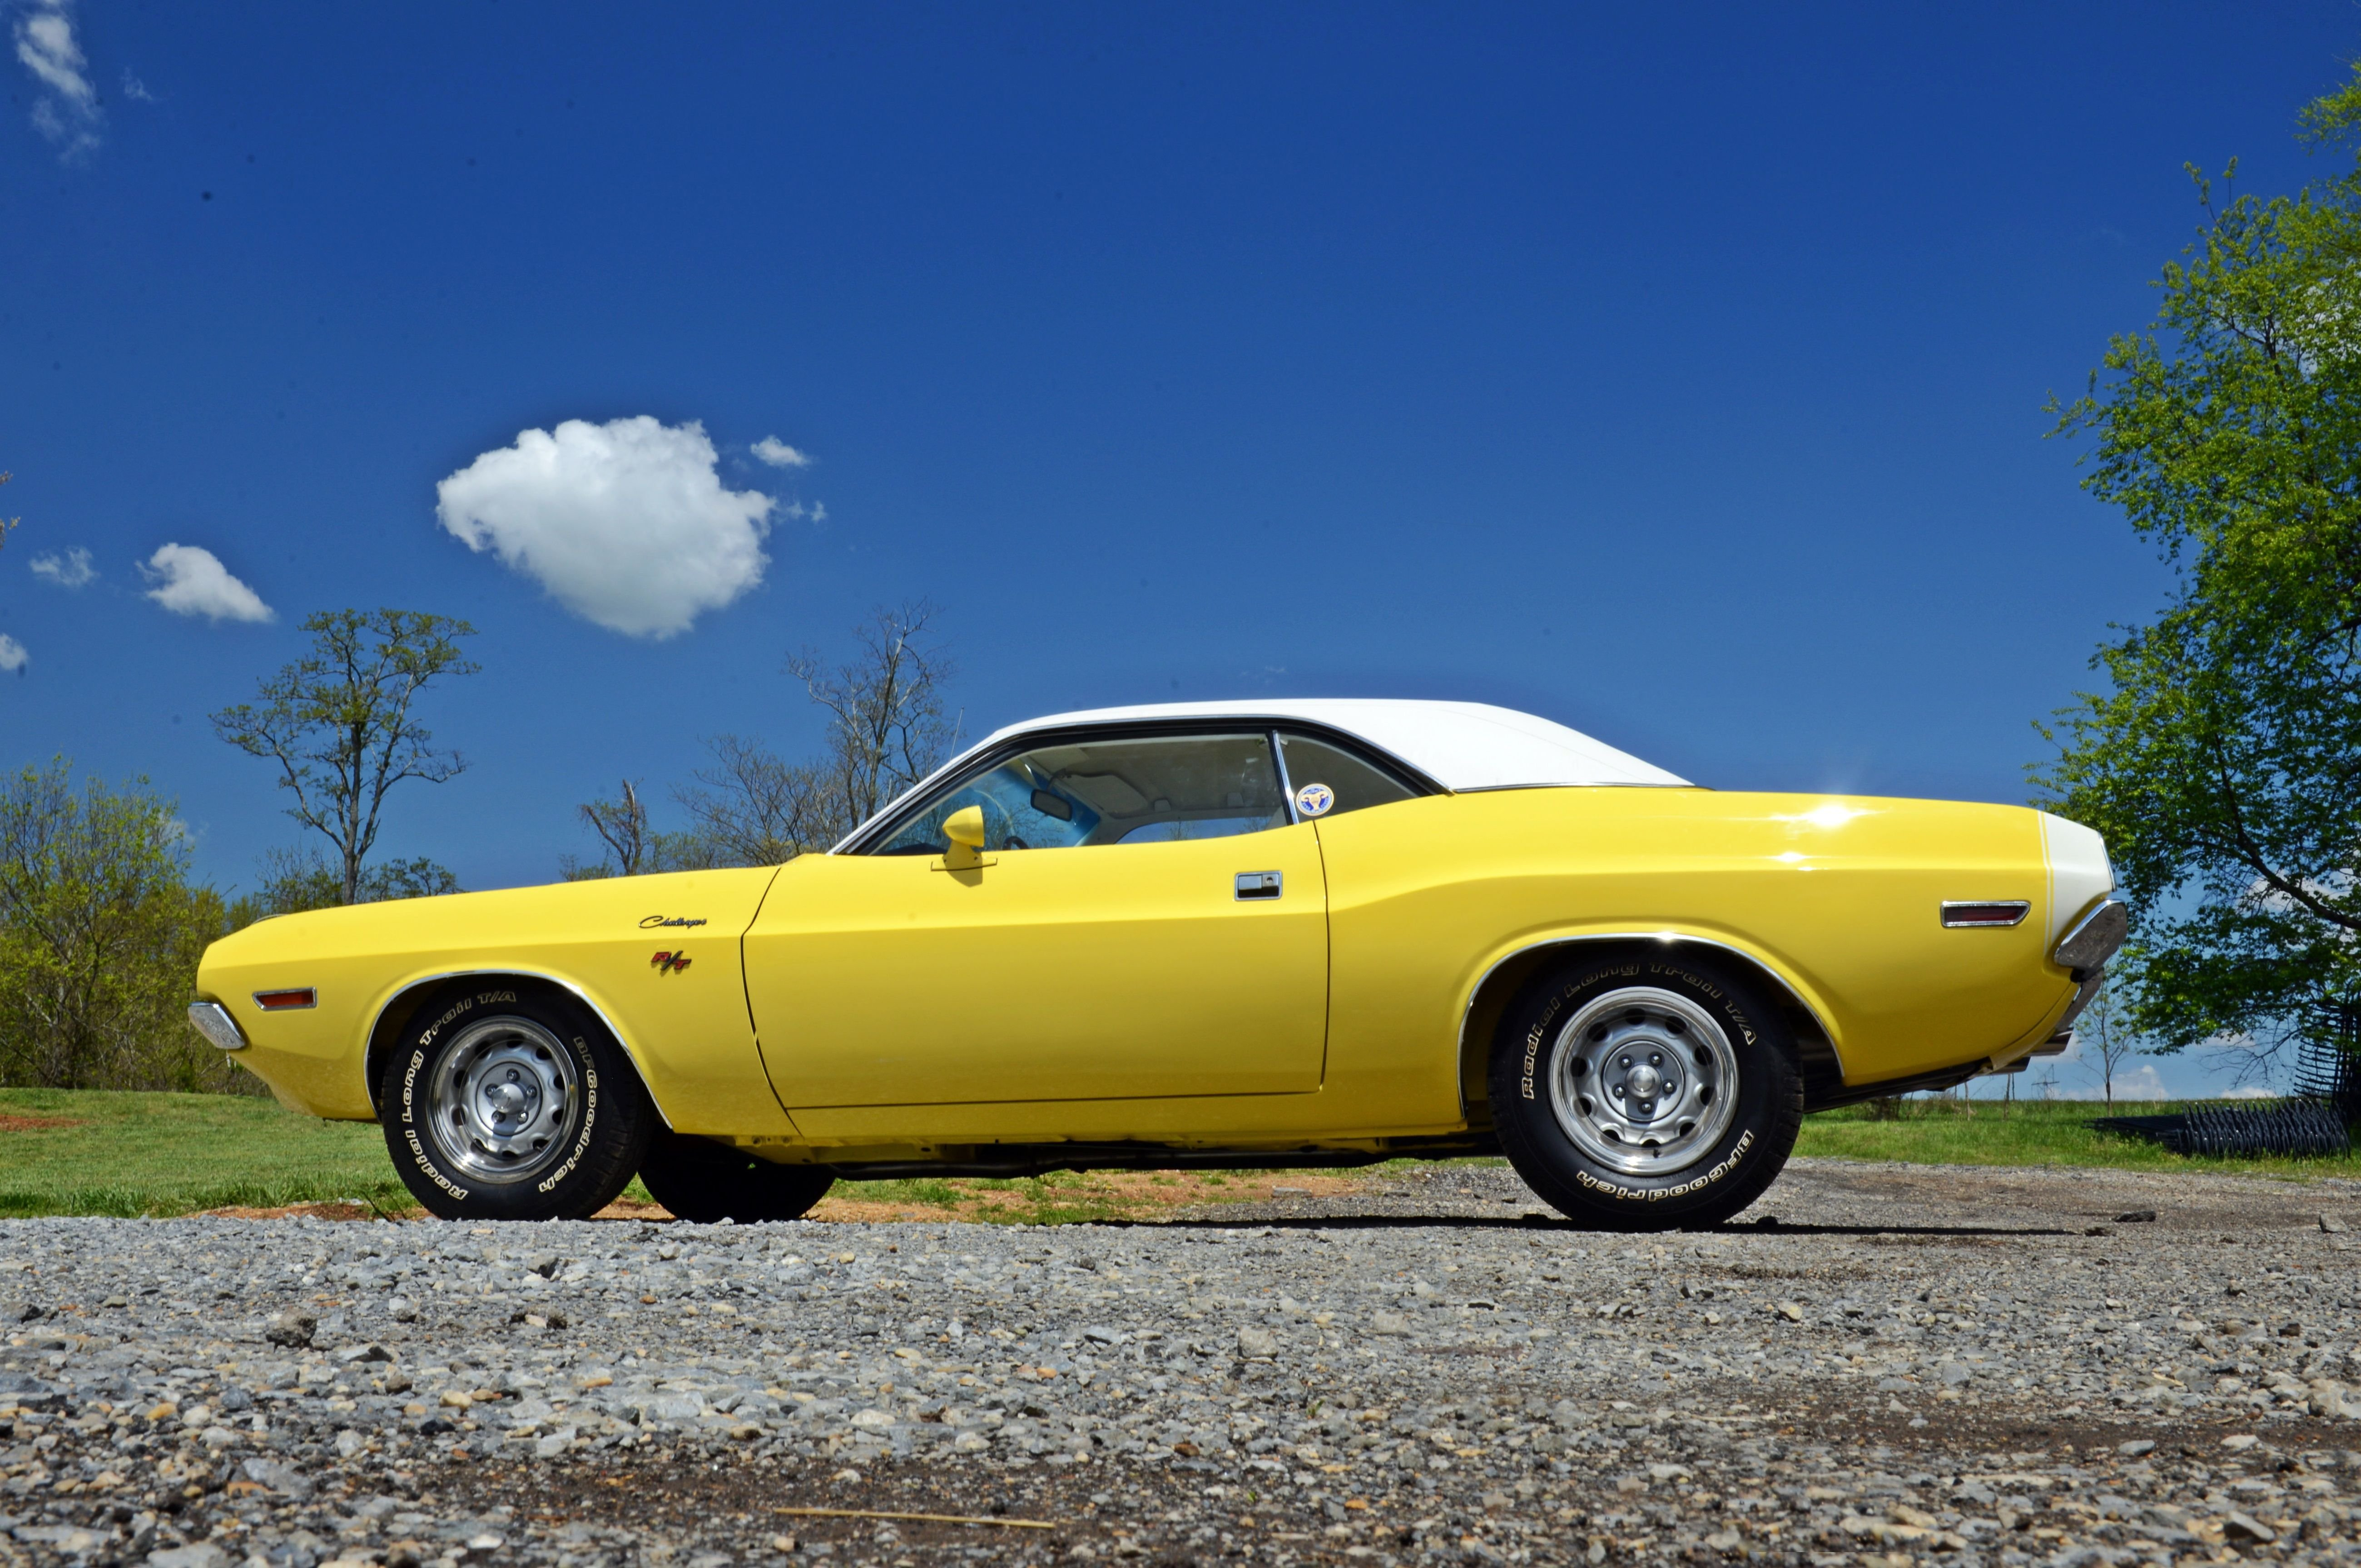 1970 Dodge Challenger Rt Muscle Classic Old Original